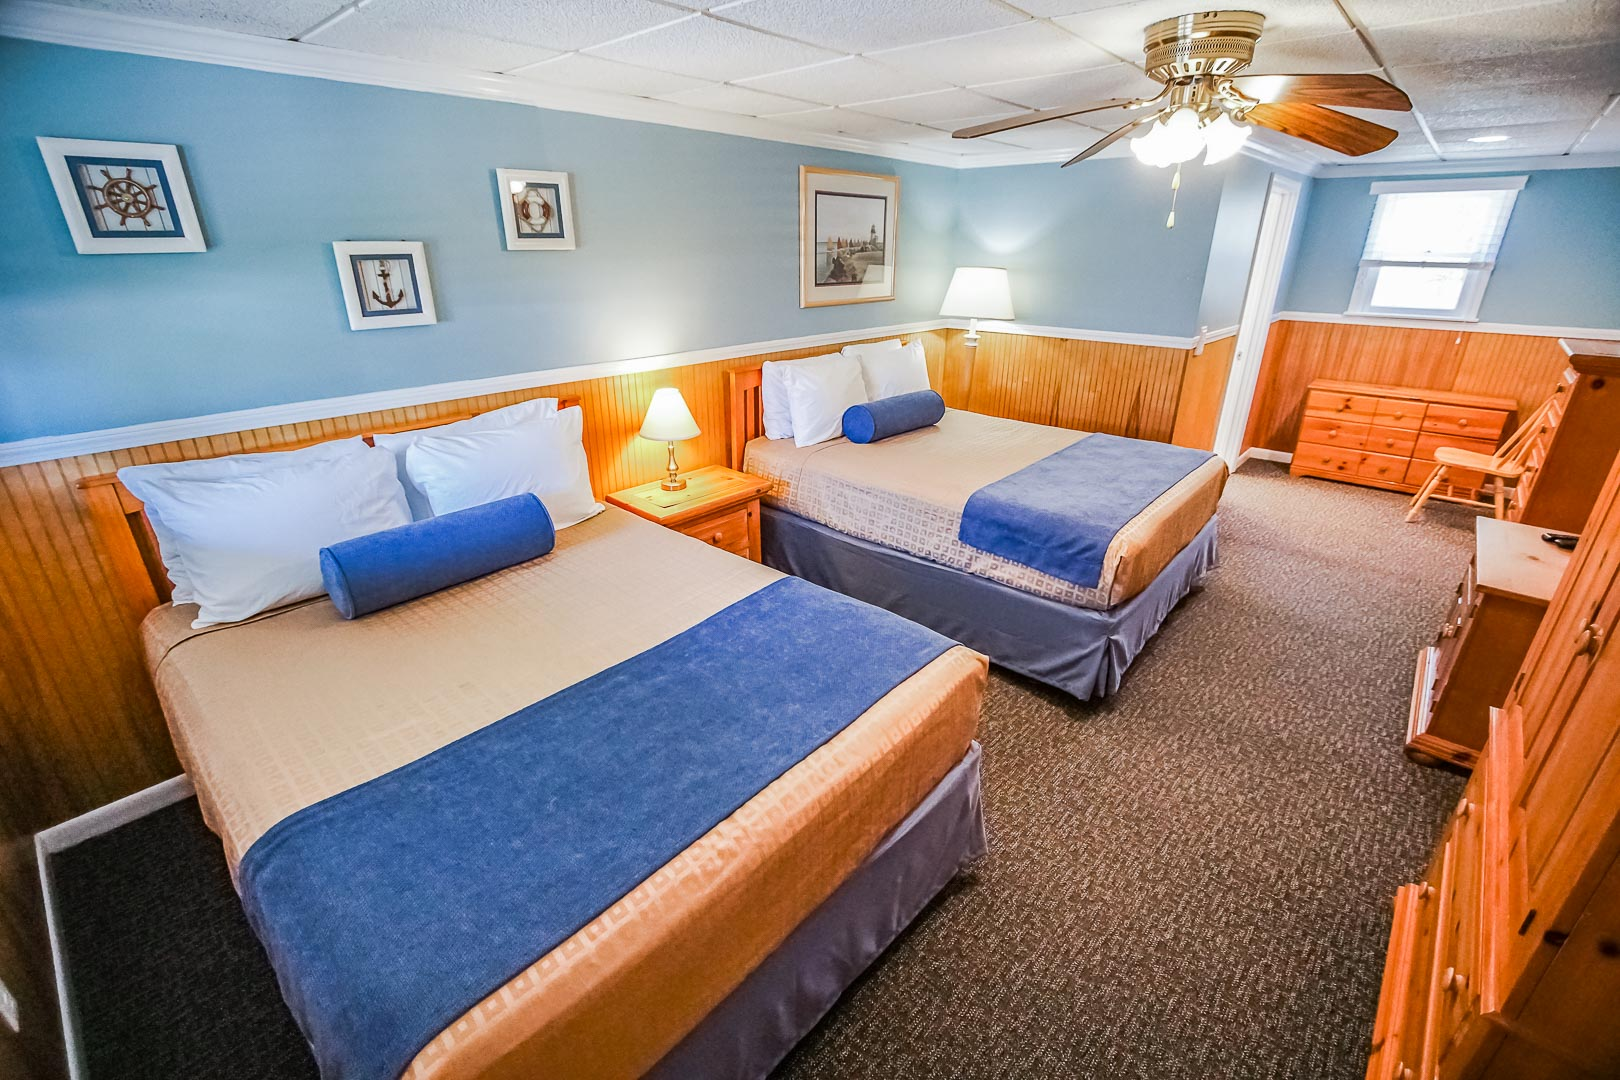 A spacious accommodation with double beds at VRI's Island Manor Resort in Rhode Island.